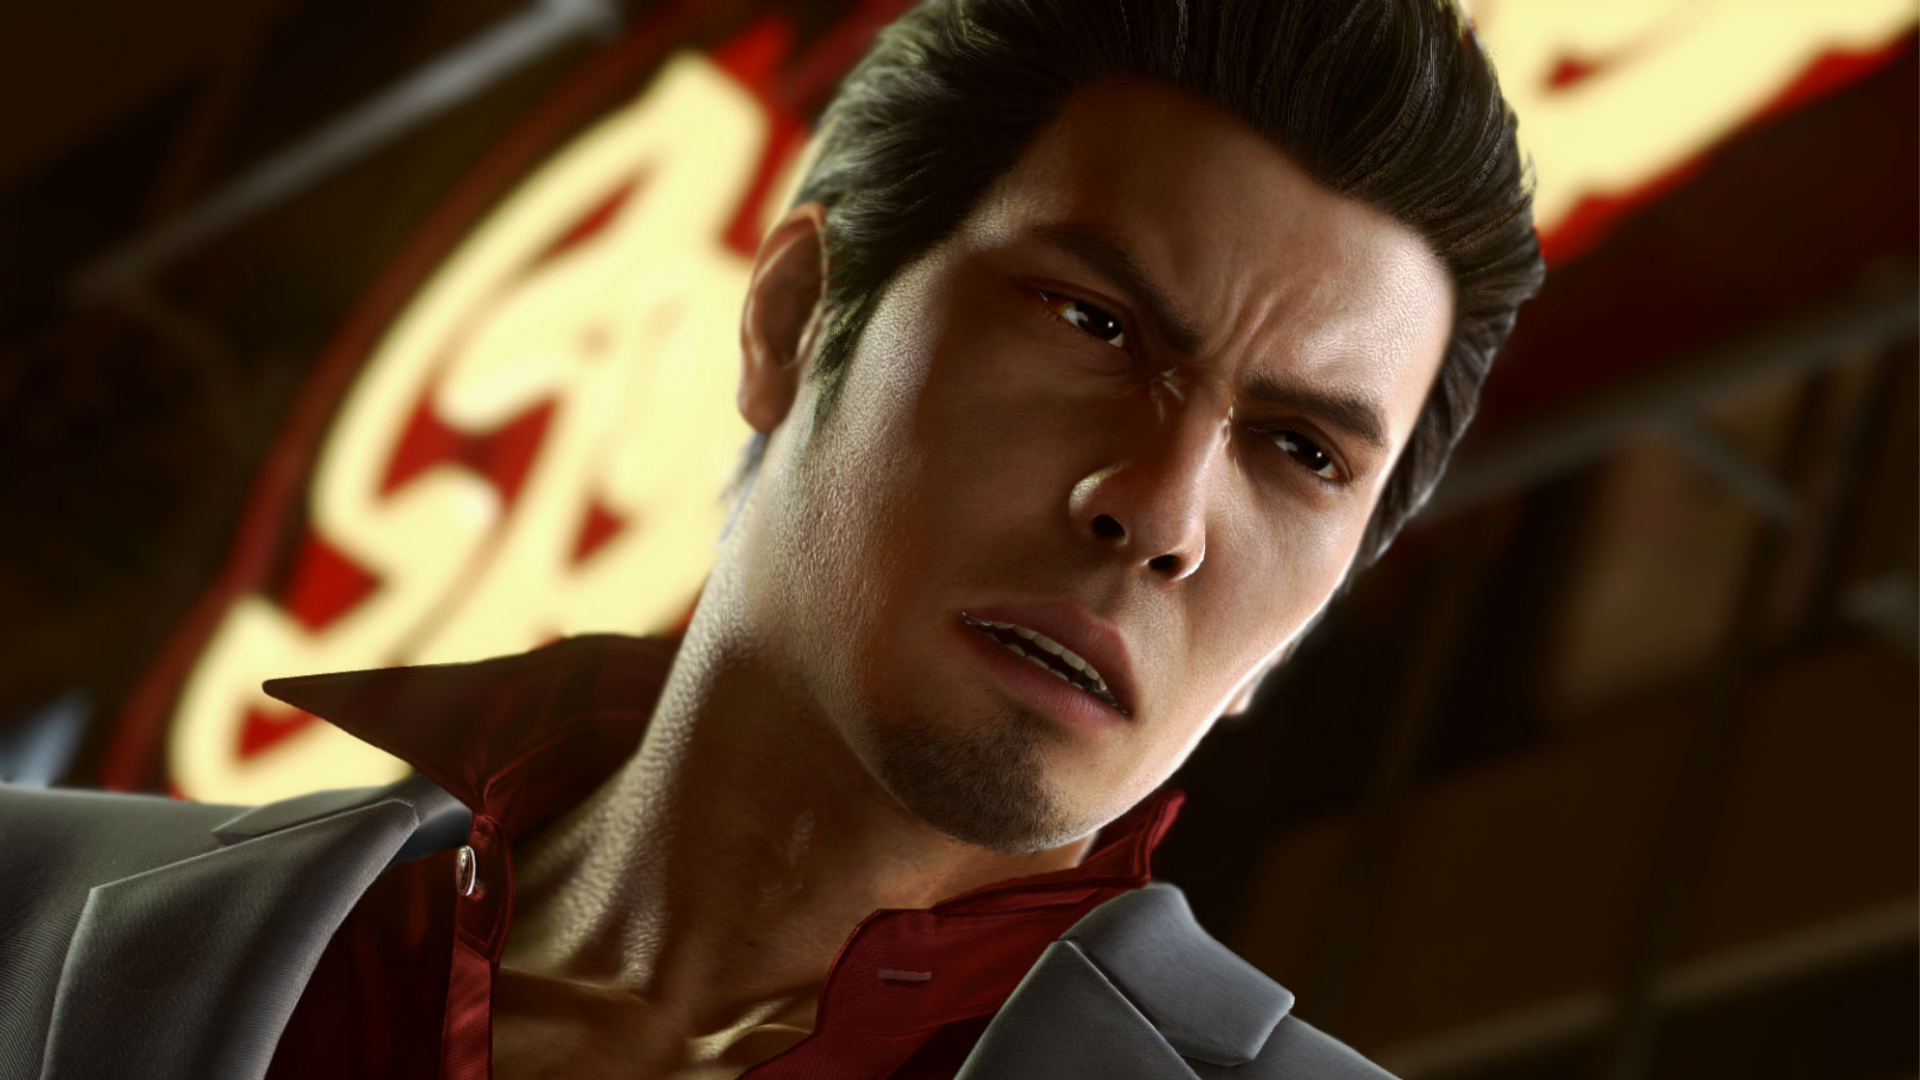 Ultimate Buyer's Guide for the Yakuza Games